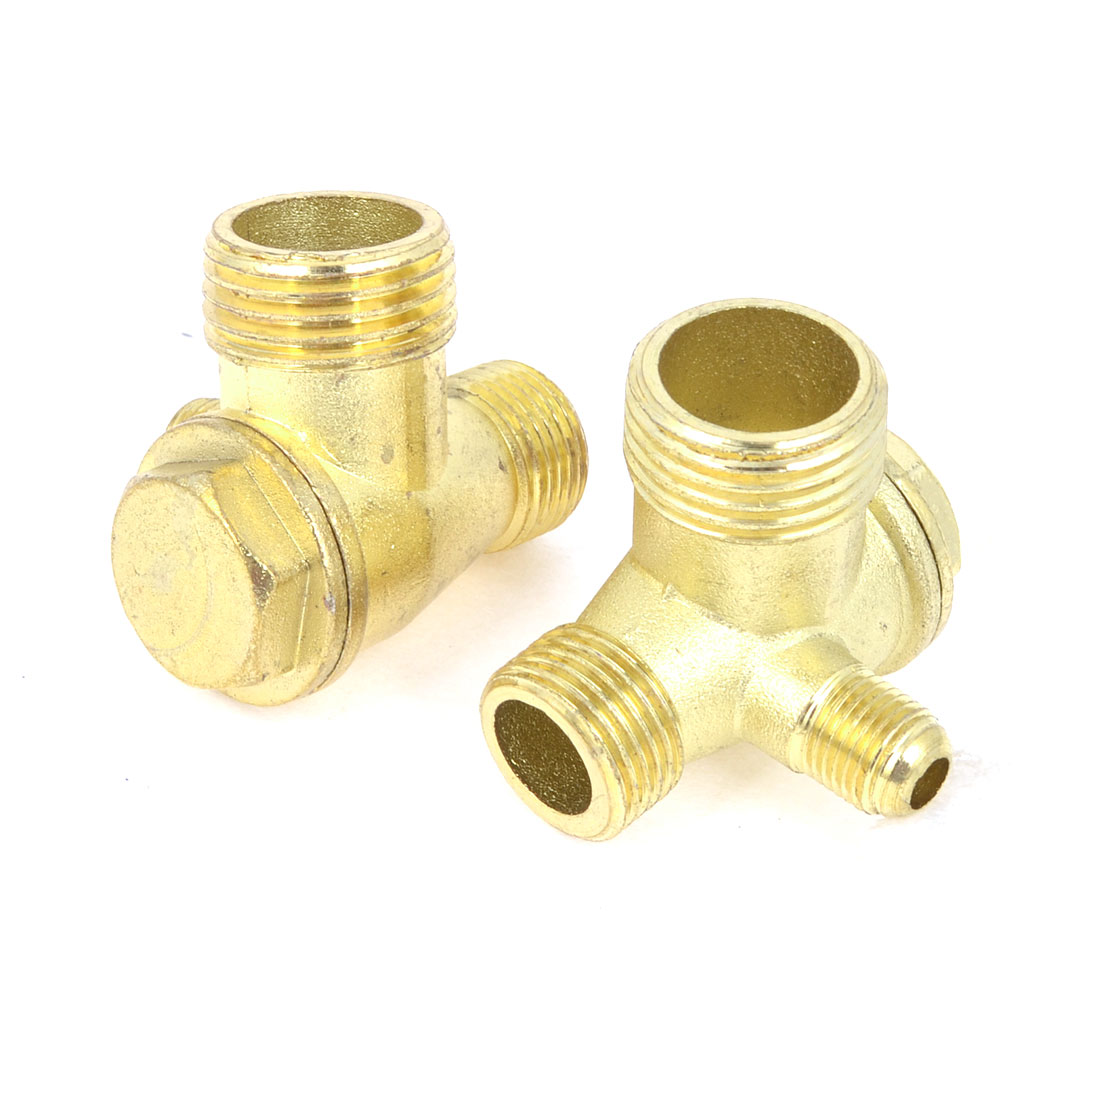 "2 Pcs 0.4"" 0.6"" 0.2"" Male Thread 3 Way Brass Fittings Air Compressor Check Valve Gold Tone"